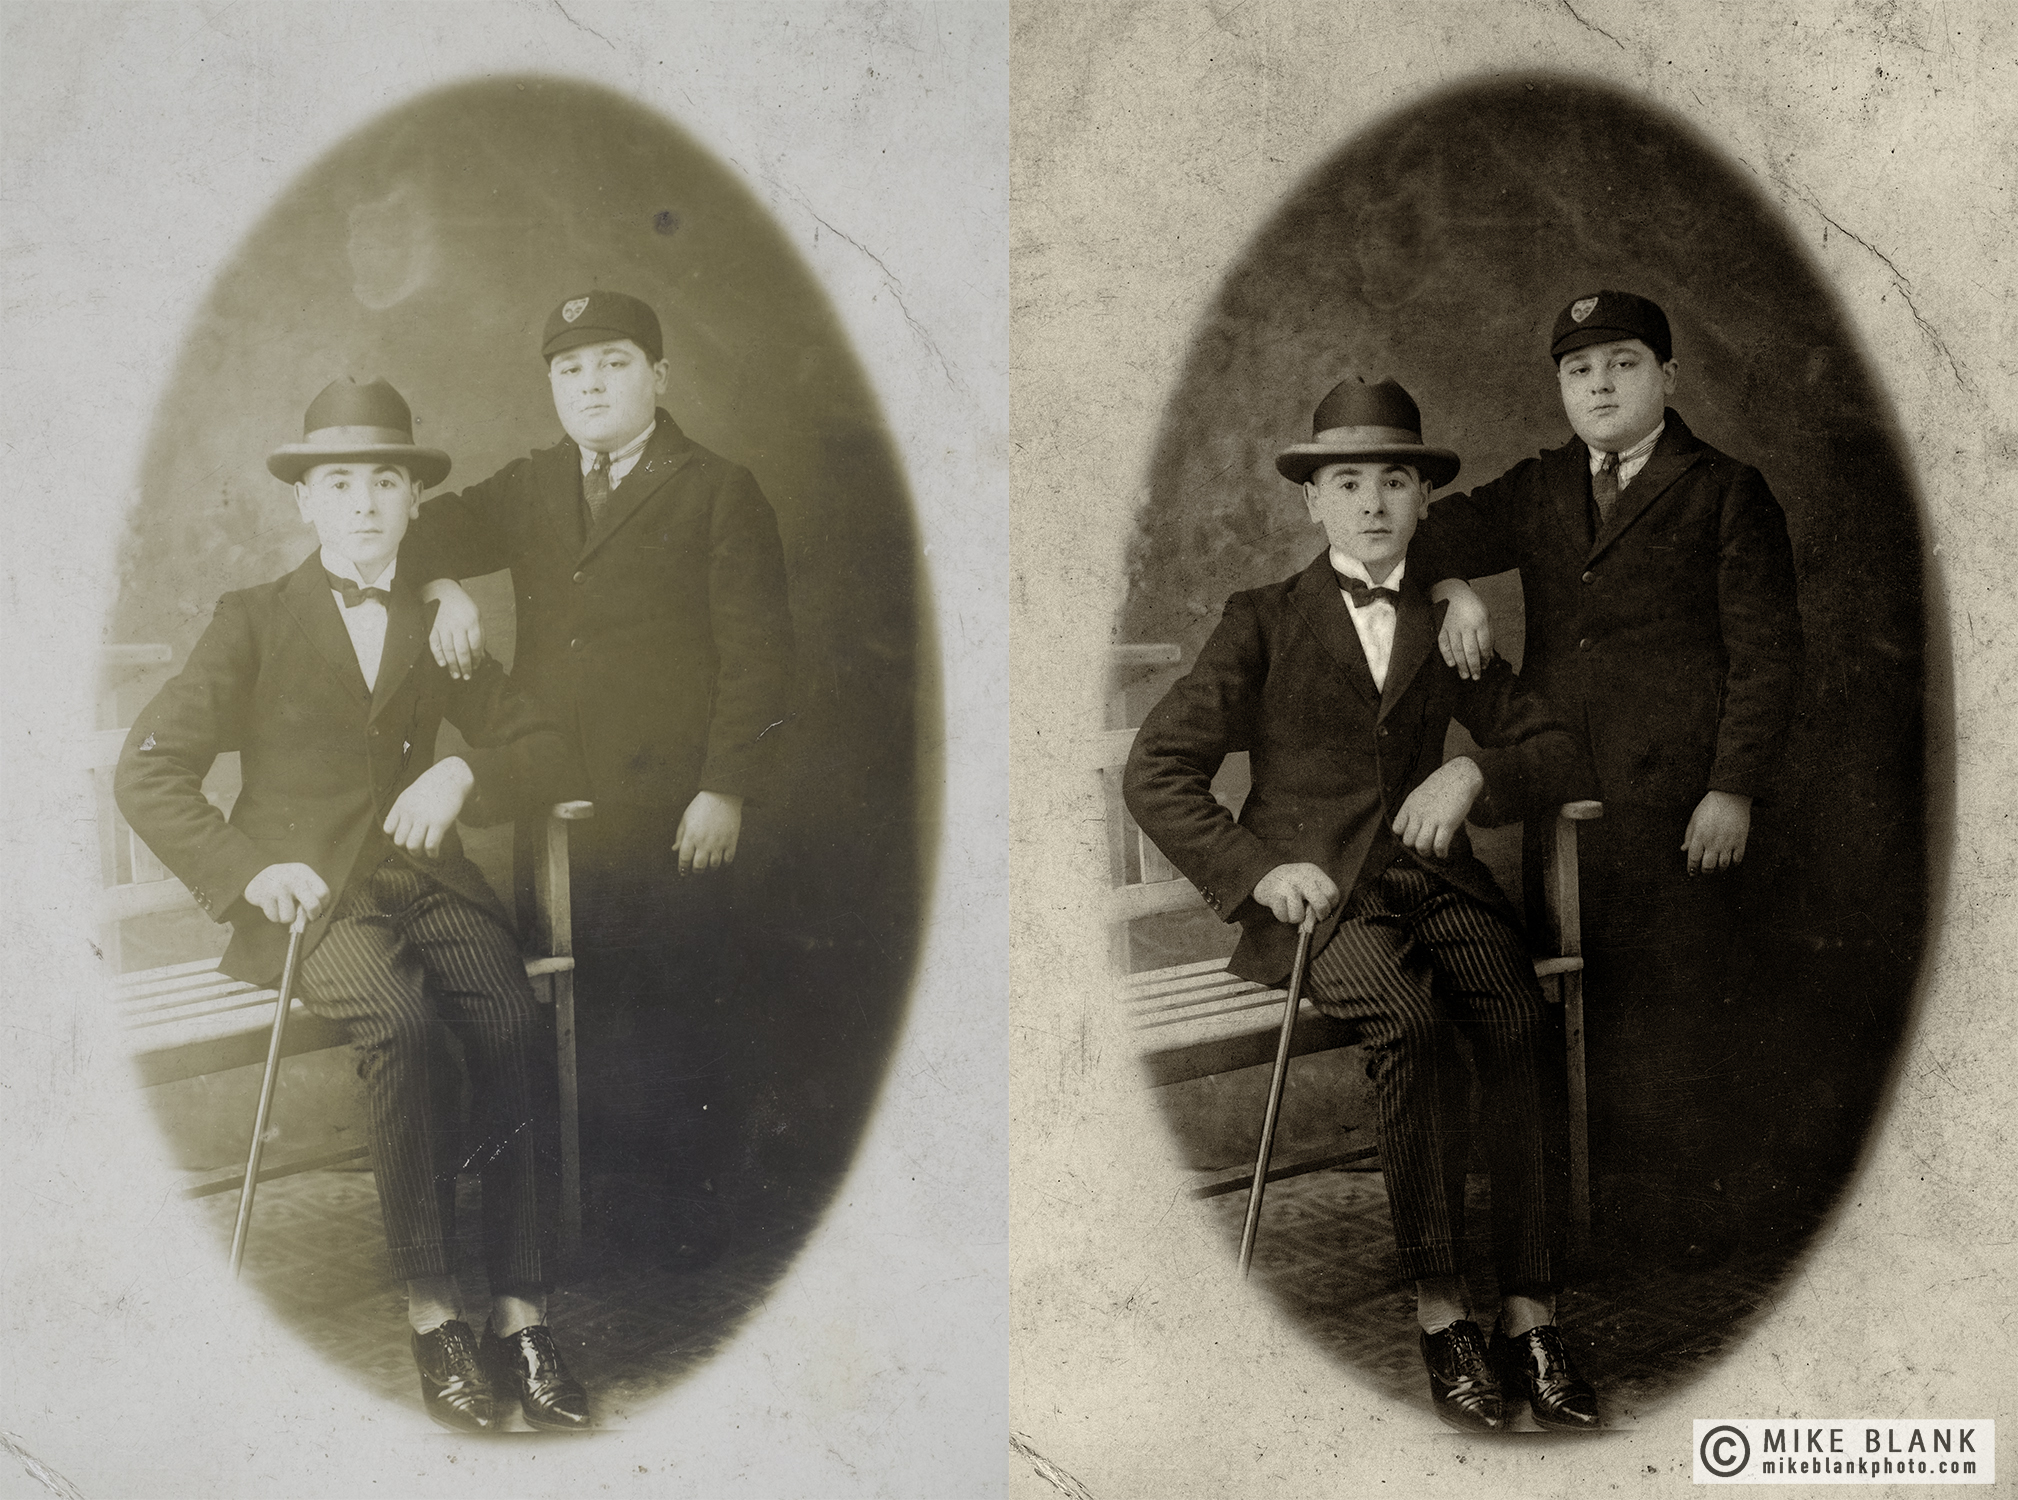 Digital restoration: my lovely uncles Joe (seated) and Jack (standing) circa 1923.